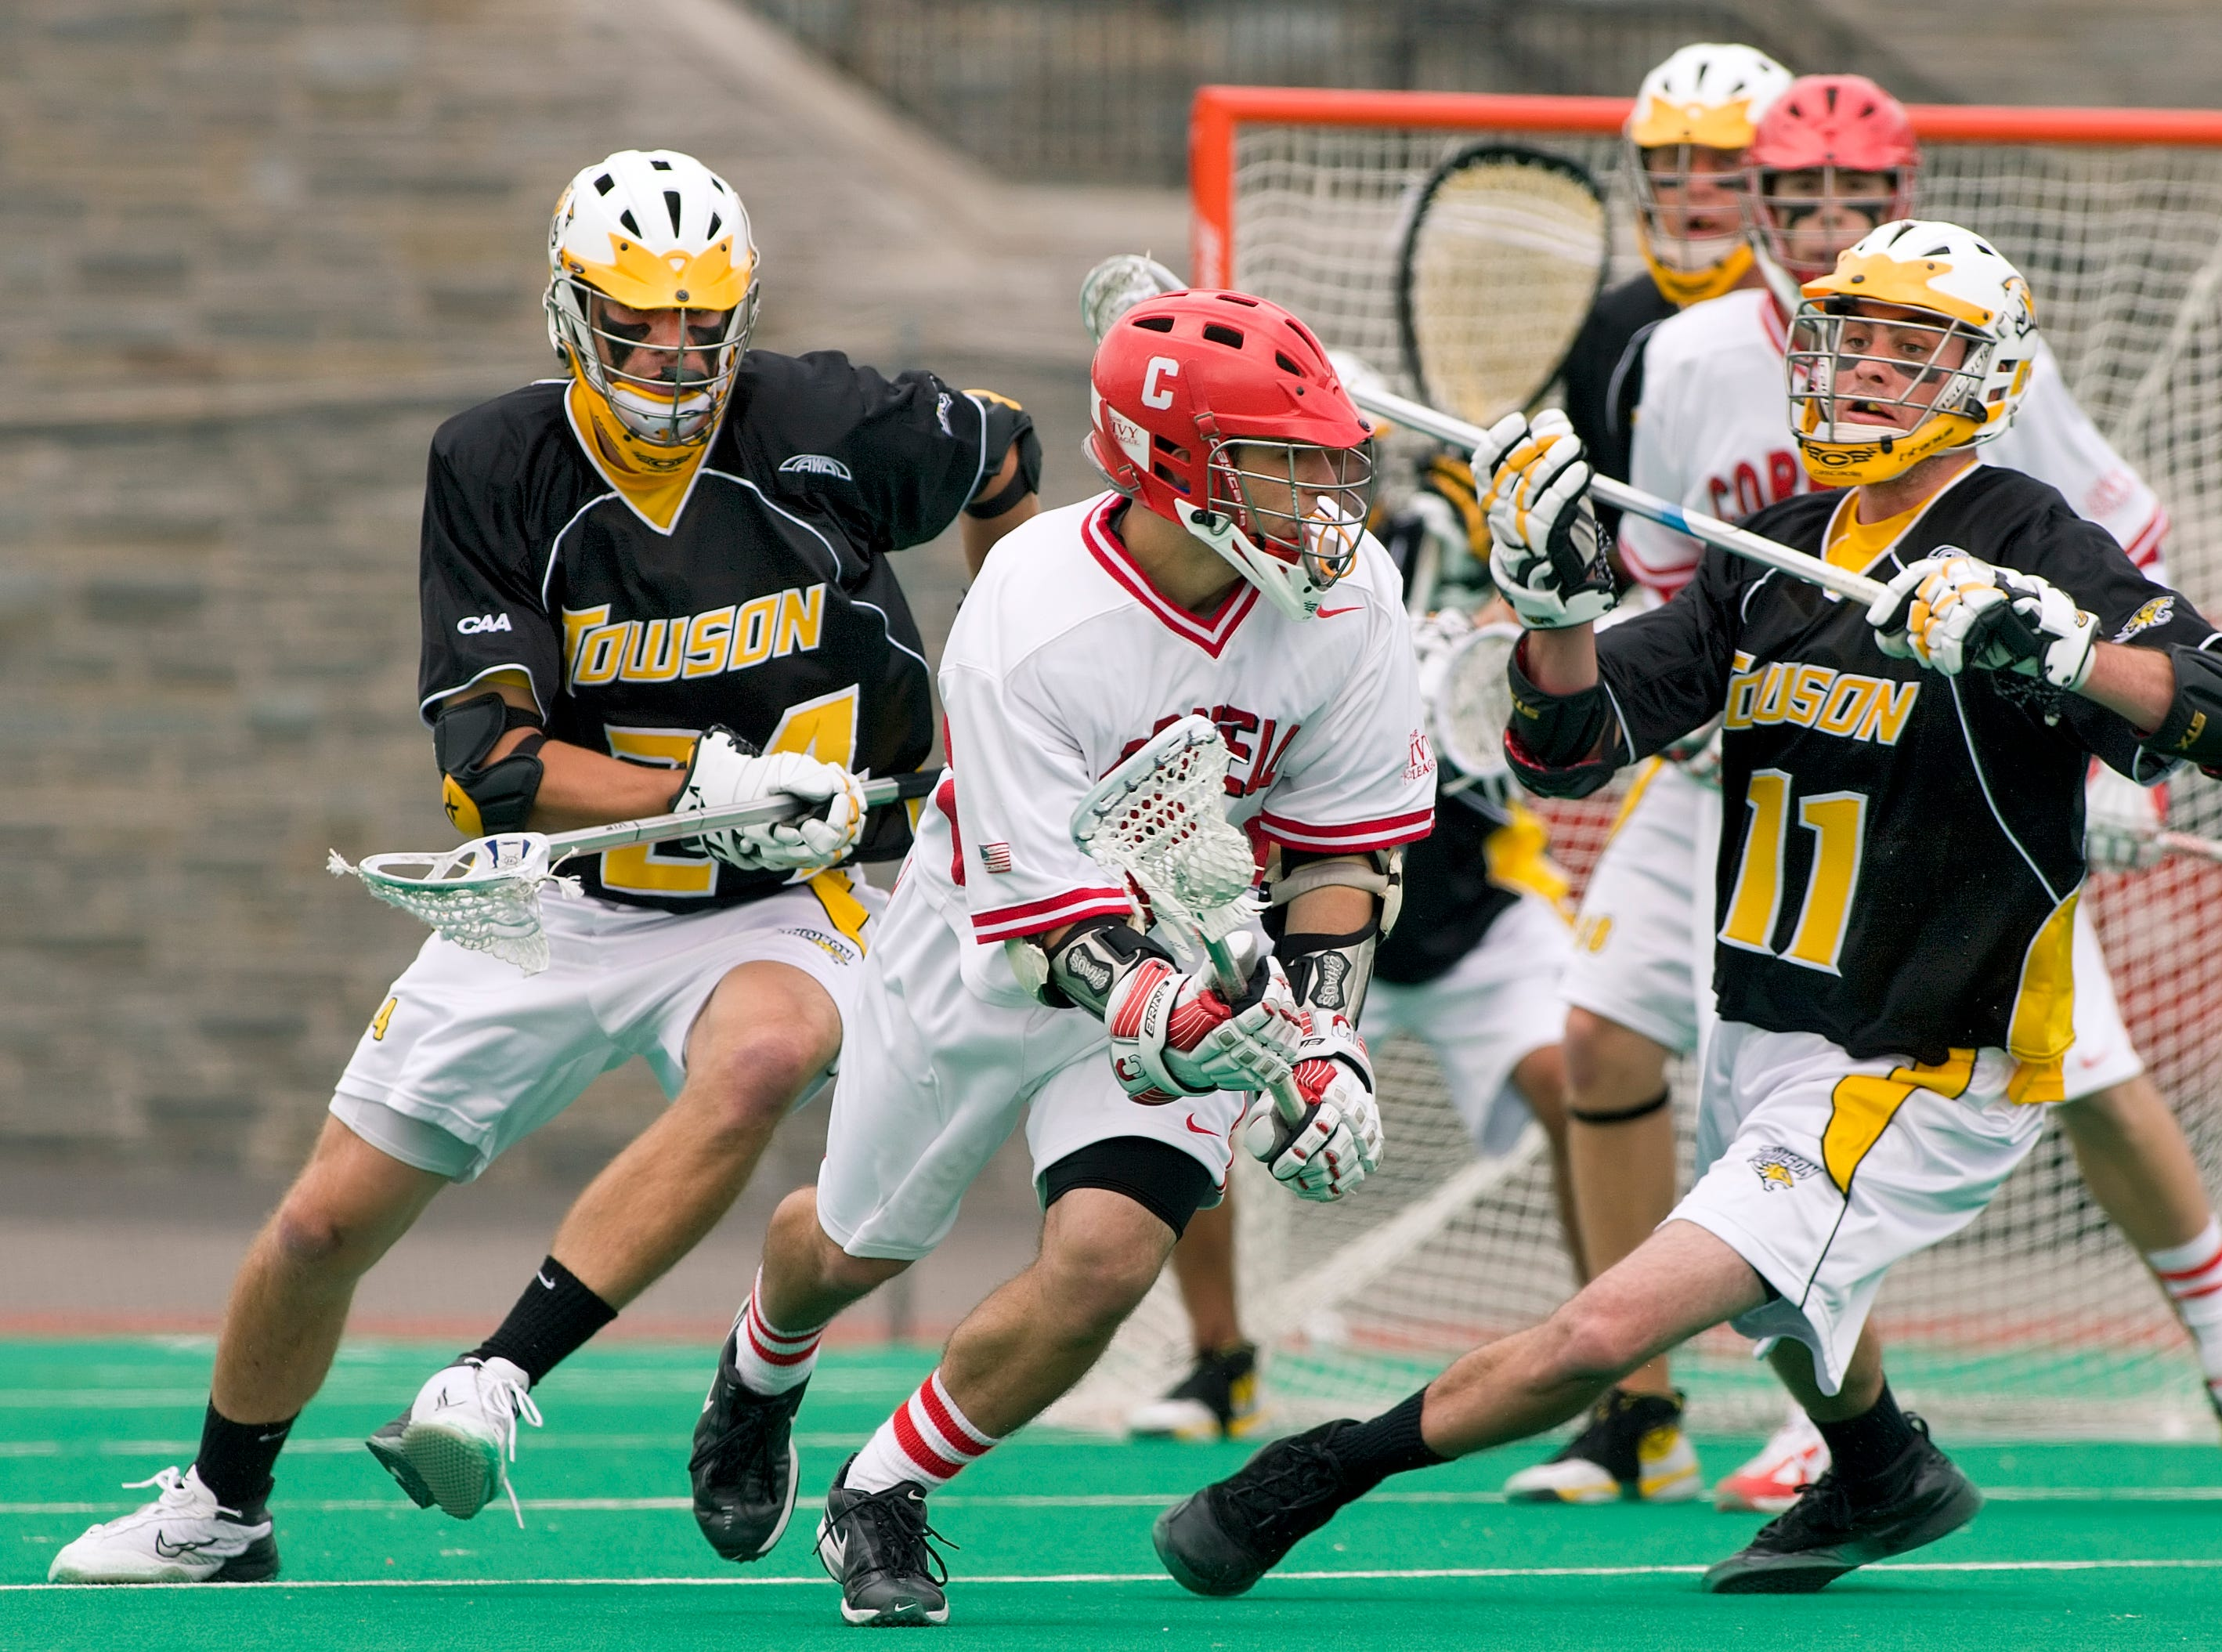 2007: Cornell's John Espey looks for an opening as Towson's Fred Lee, left, and Matt Latonick defend during Cornell's first round victory over Towson May 12th.